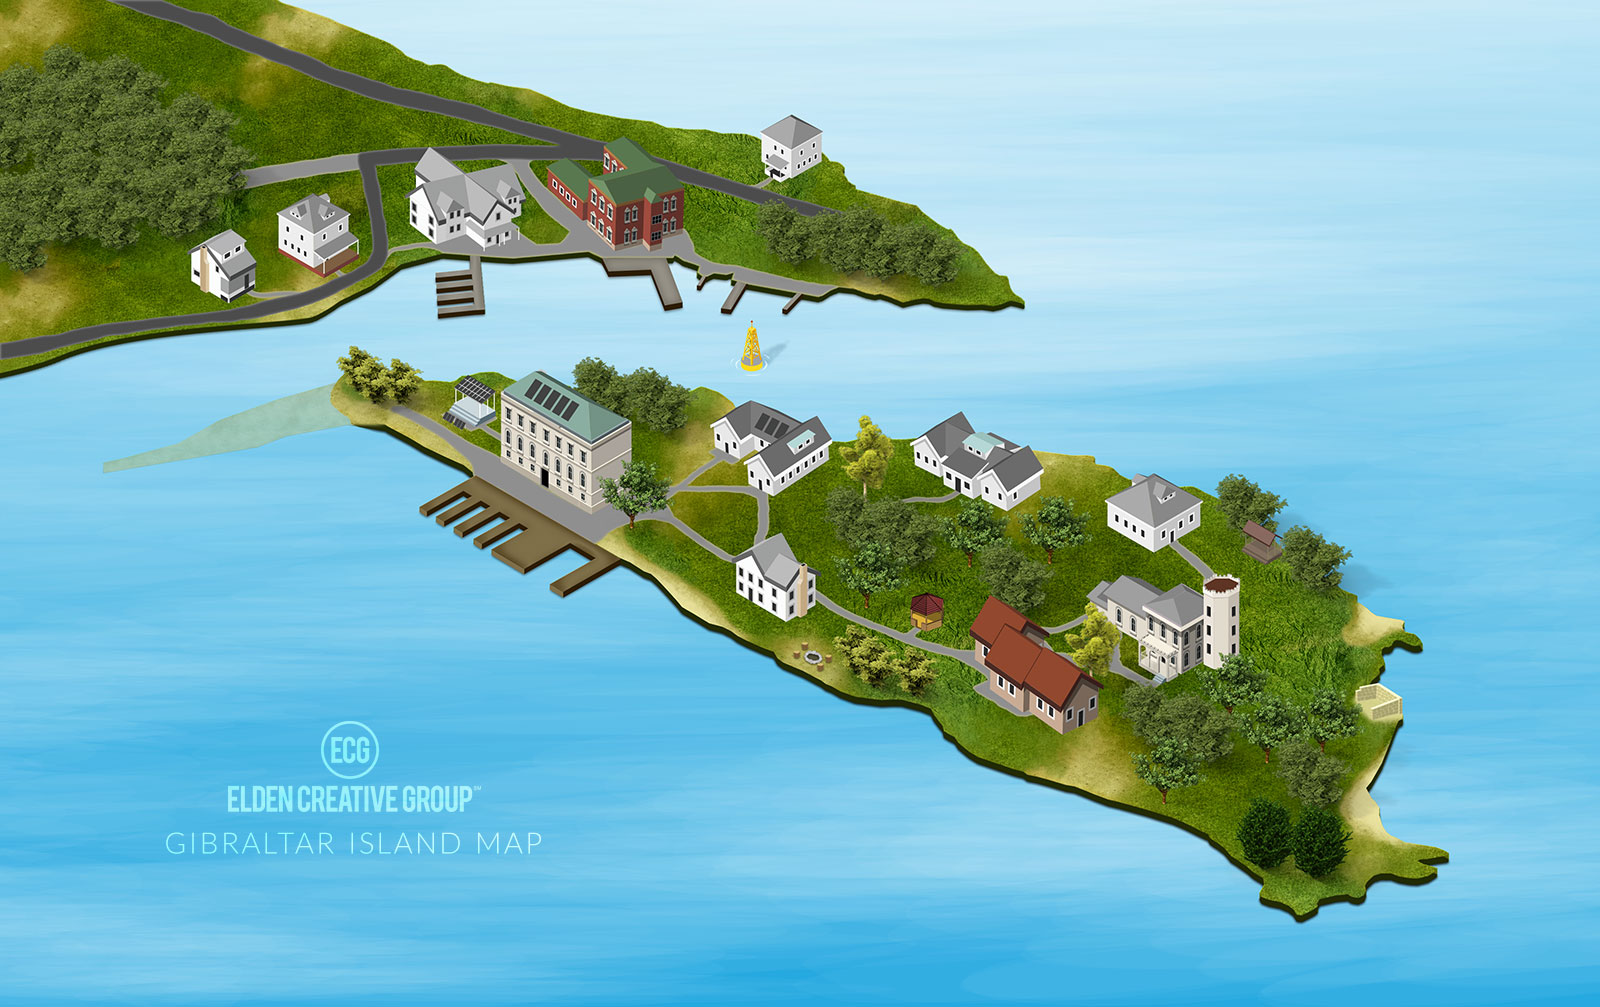 Gibraltar Island Map | Elden Creative Group